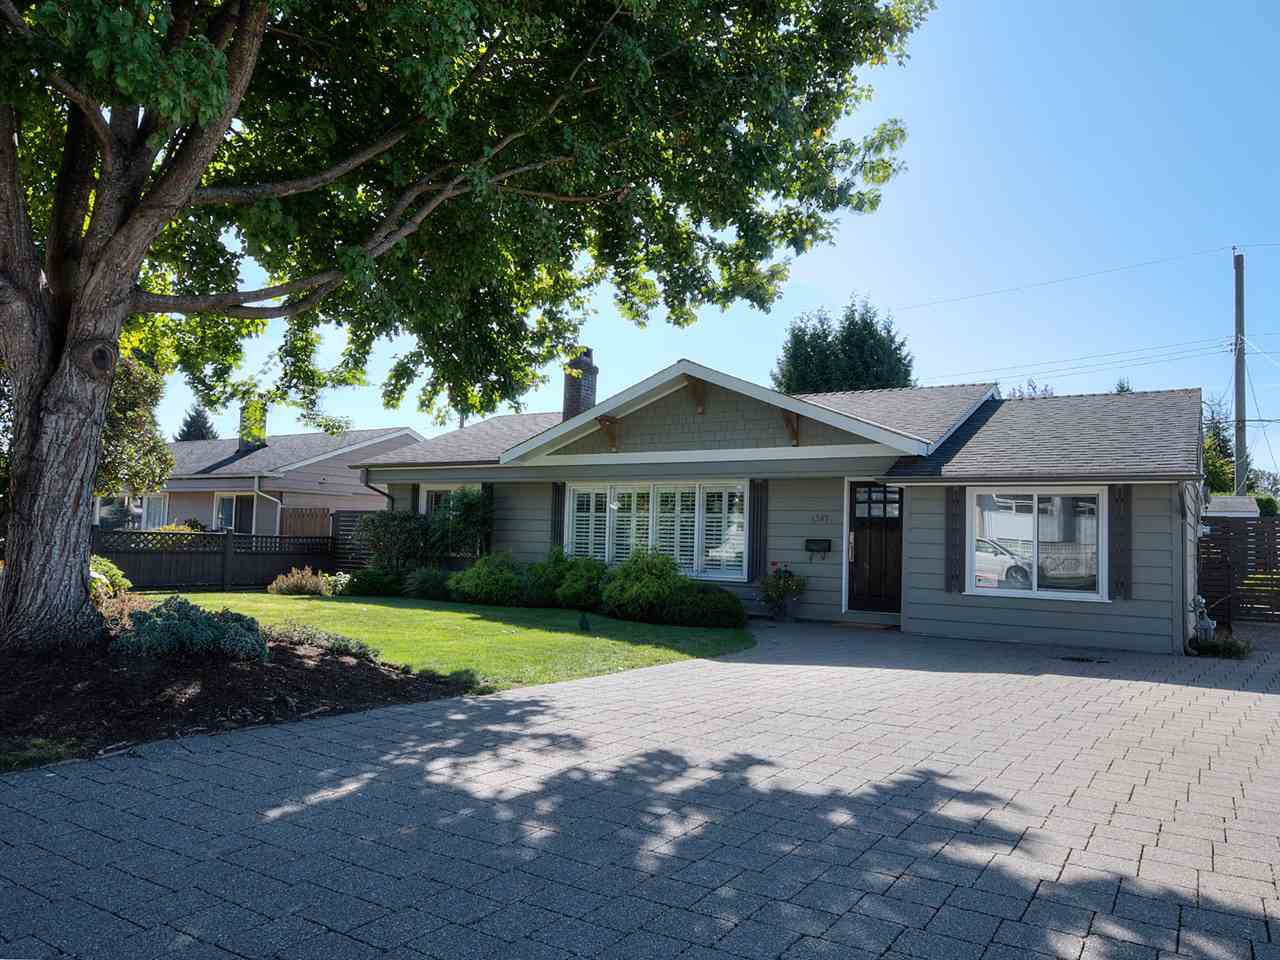 Main Photo: 1387 W 15TH Street in North Vancouver: Norgate House for sale : MLS®# R2206588